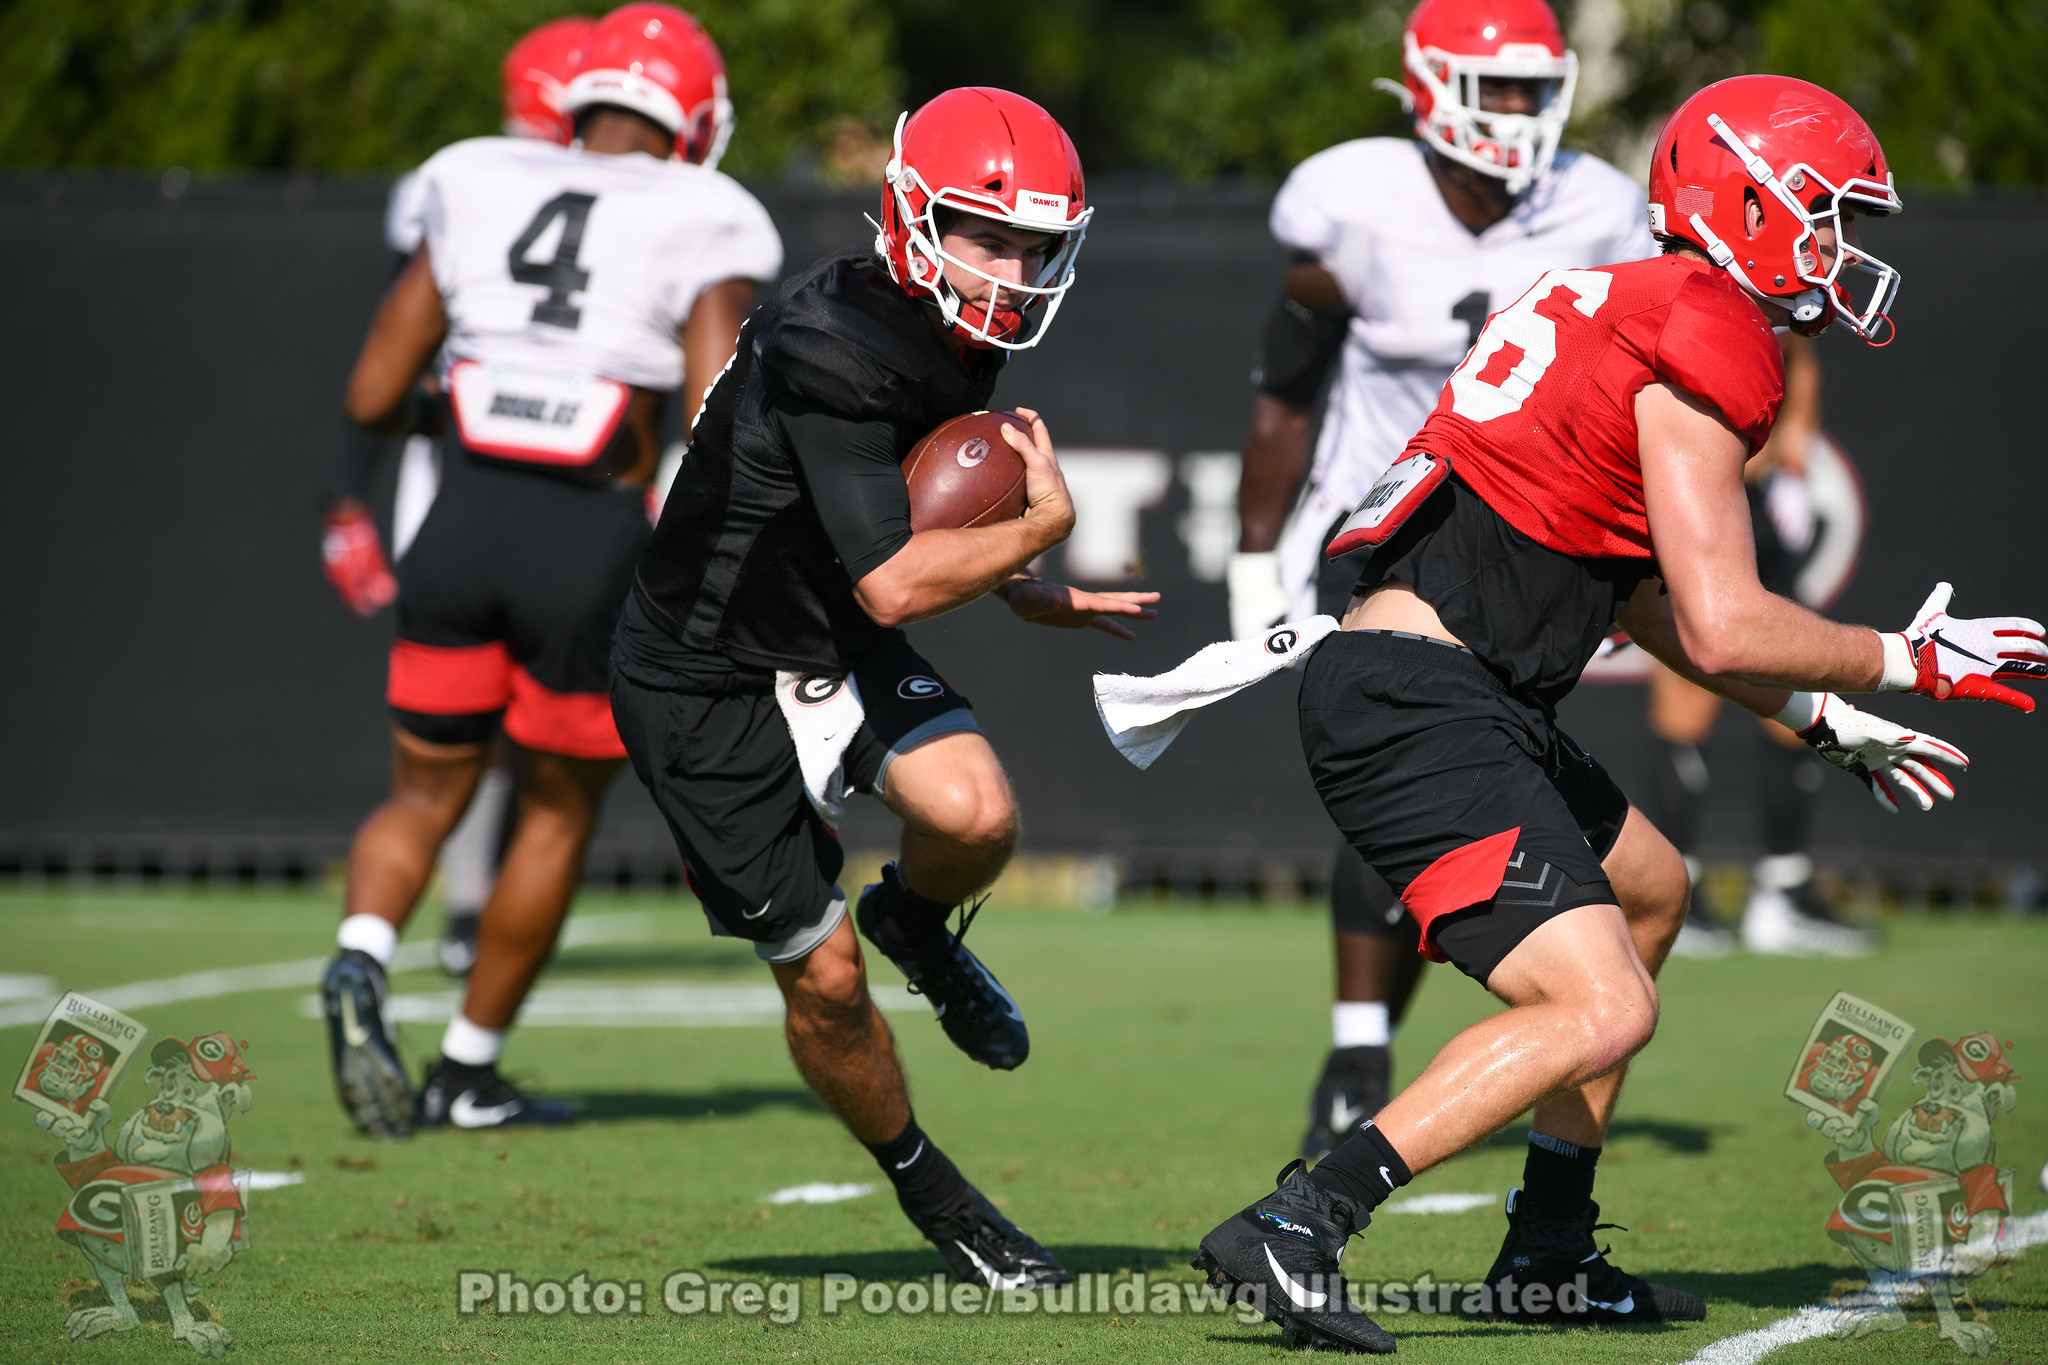 Georgia quarterback Stetson Bennett IV participating in drills during fall camp.